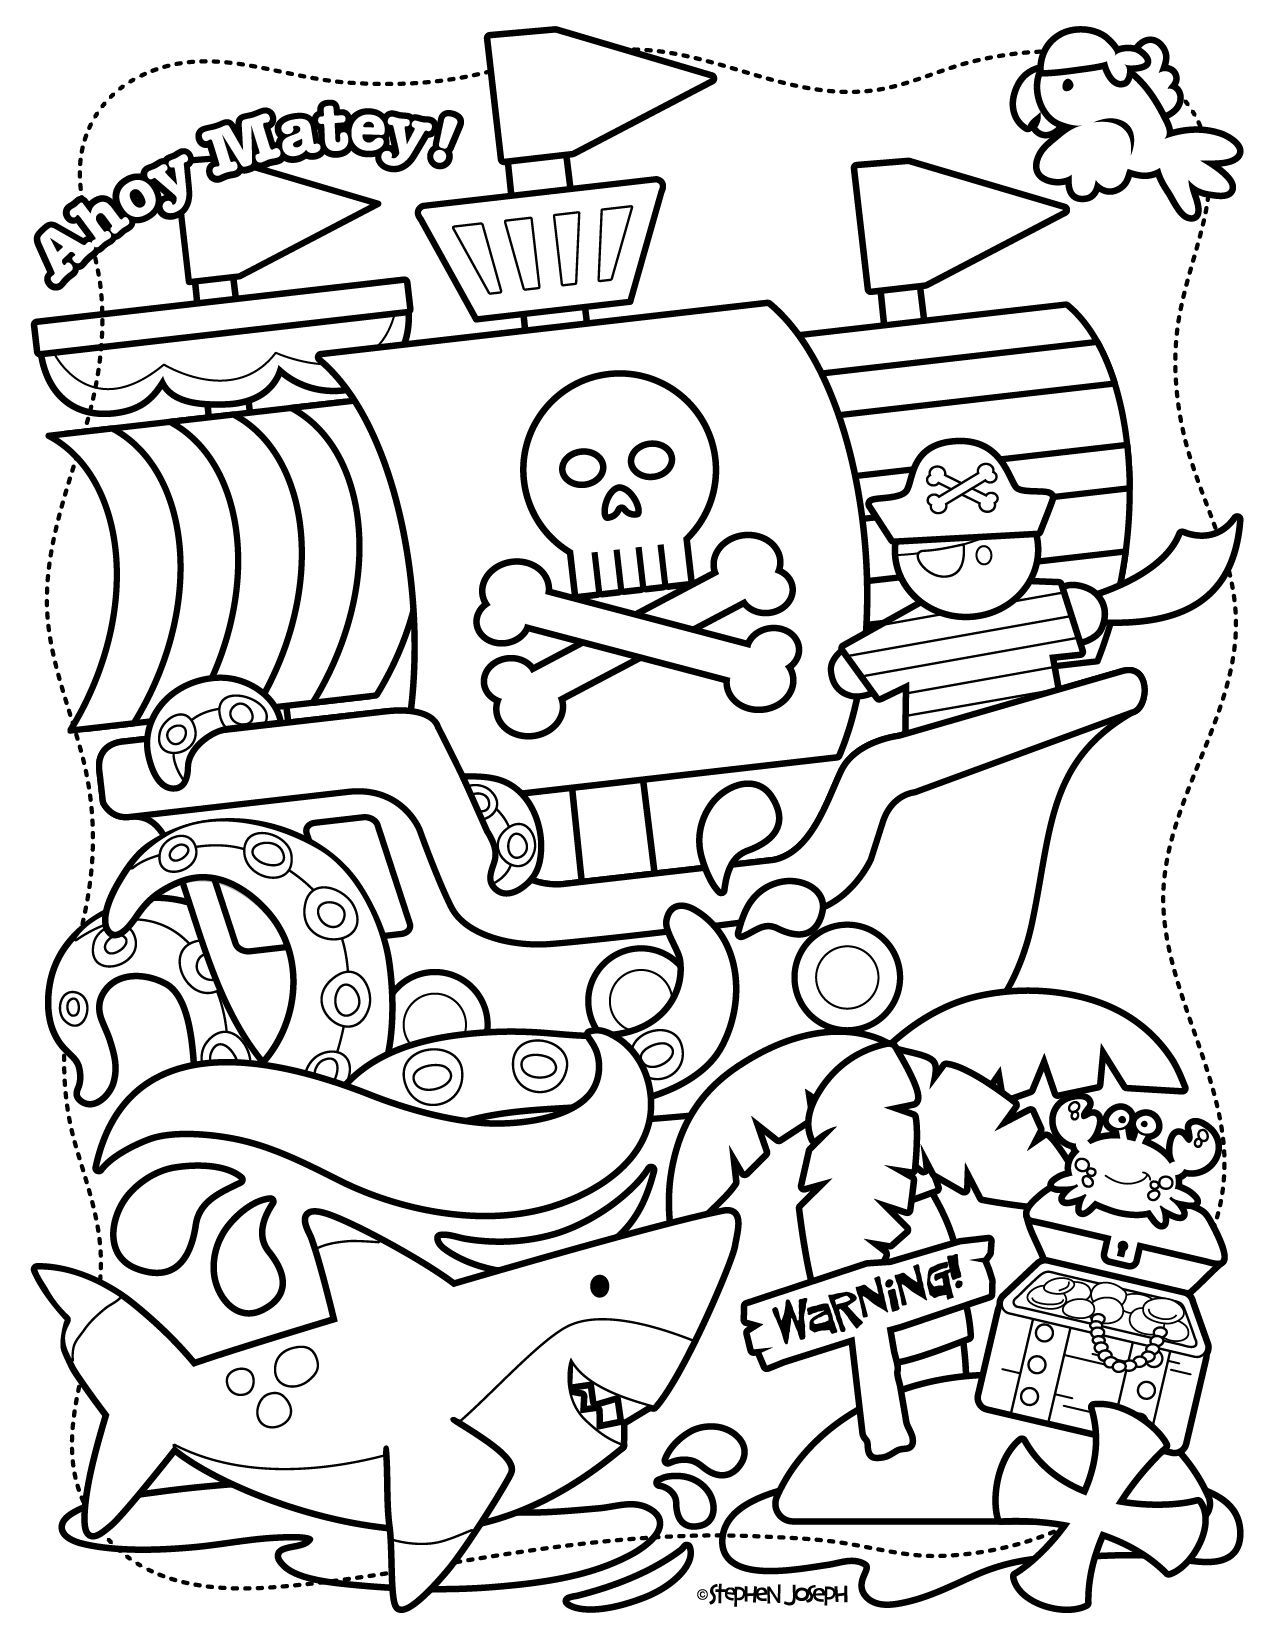 Pirate Coloring Page Printable Amp Free By Stephen Joseph In 2020 Pirate Coloring Pages Coloring Pages Princess Coloring Pages